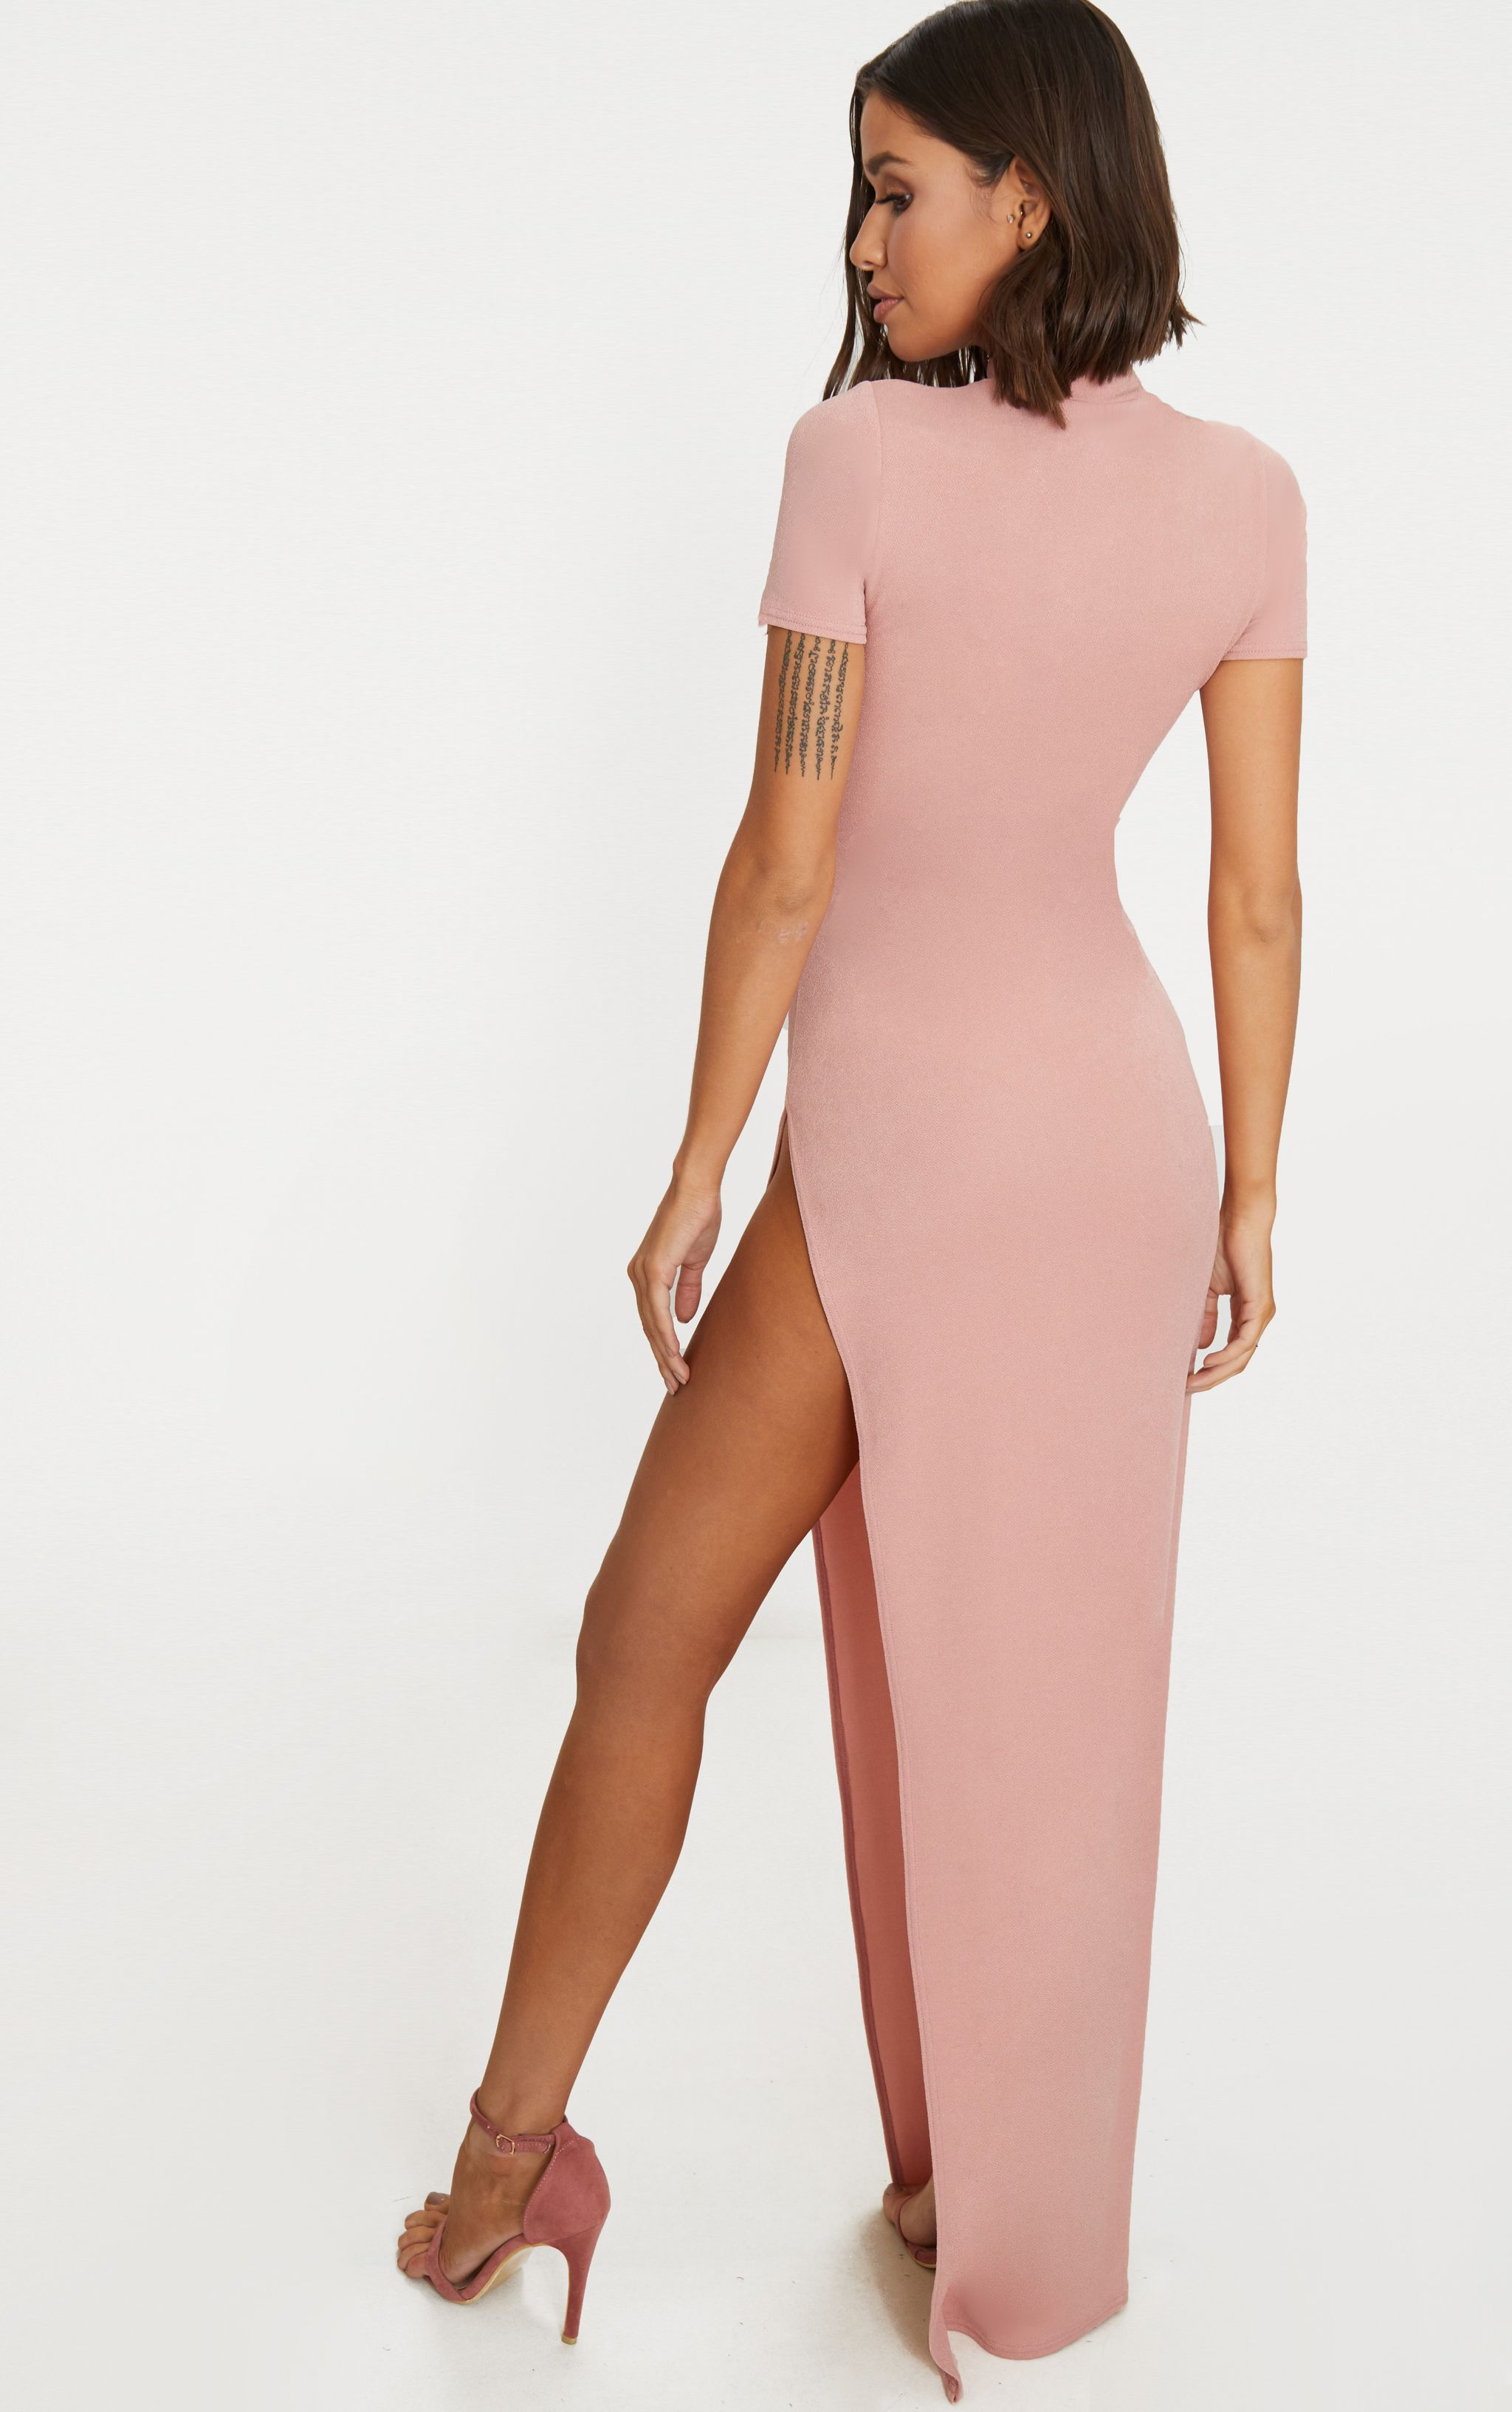 The Cheapest For Sale Dusty Pink Oriental Cut Out Detail Maxi Dress Pretty Little Thing Low Cost 2018 Newest For Sale 5mkAx